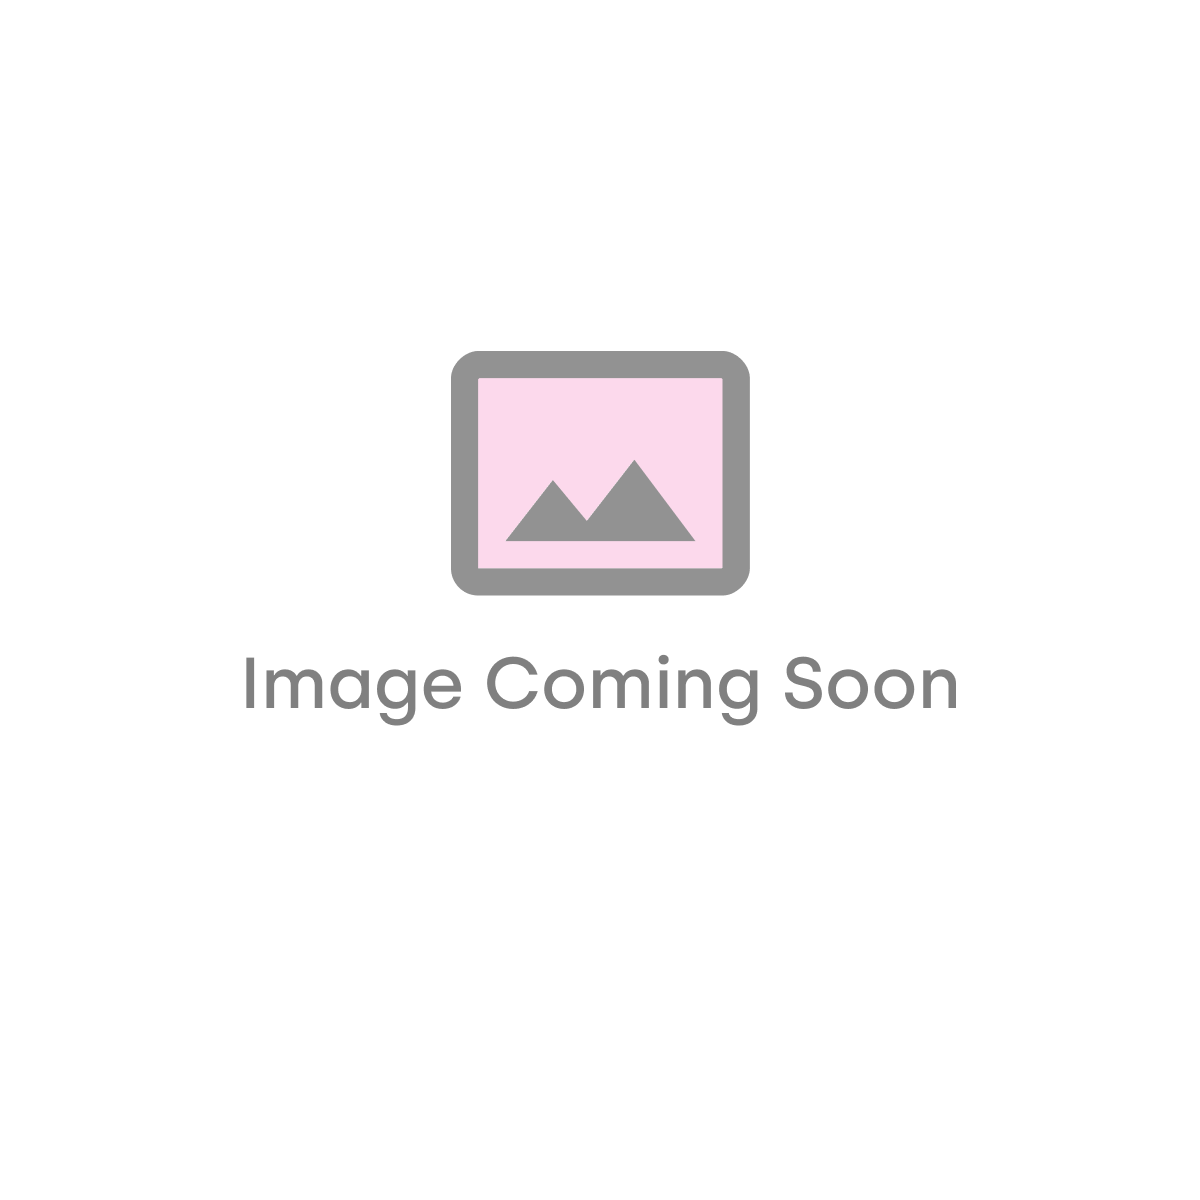 Roma Straight Heated Towel Rail  - 1800mm x 600mm - Anthracite (19723)